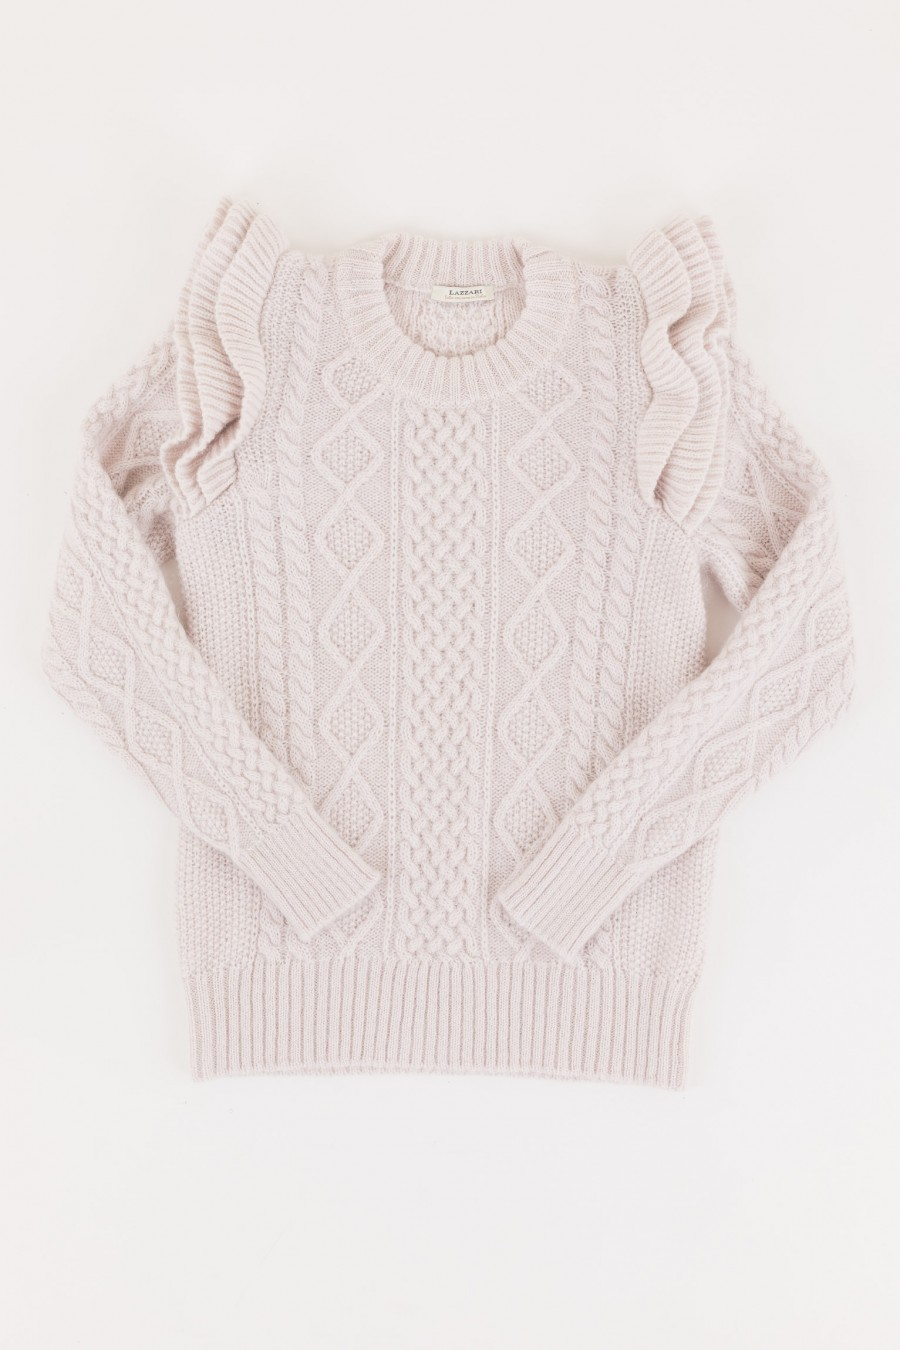 White jumper with ruffles